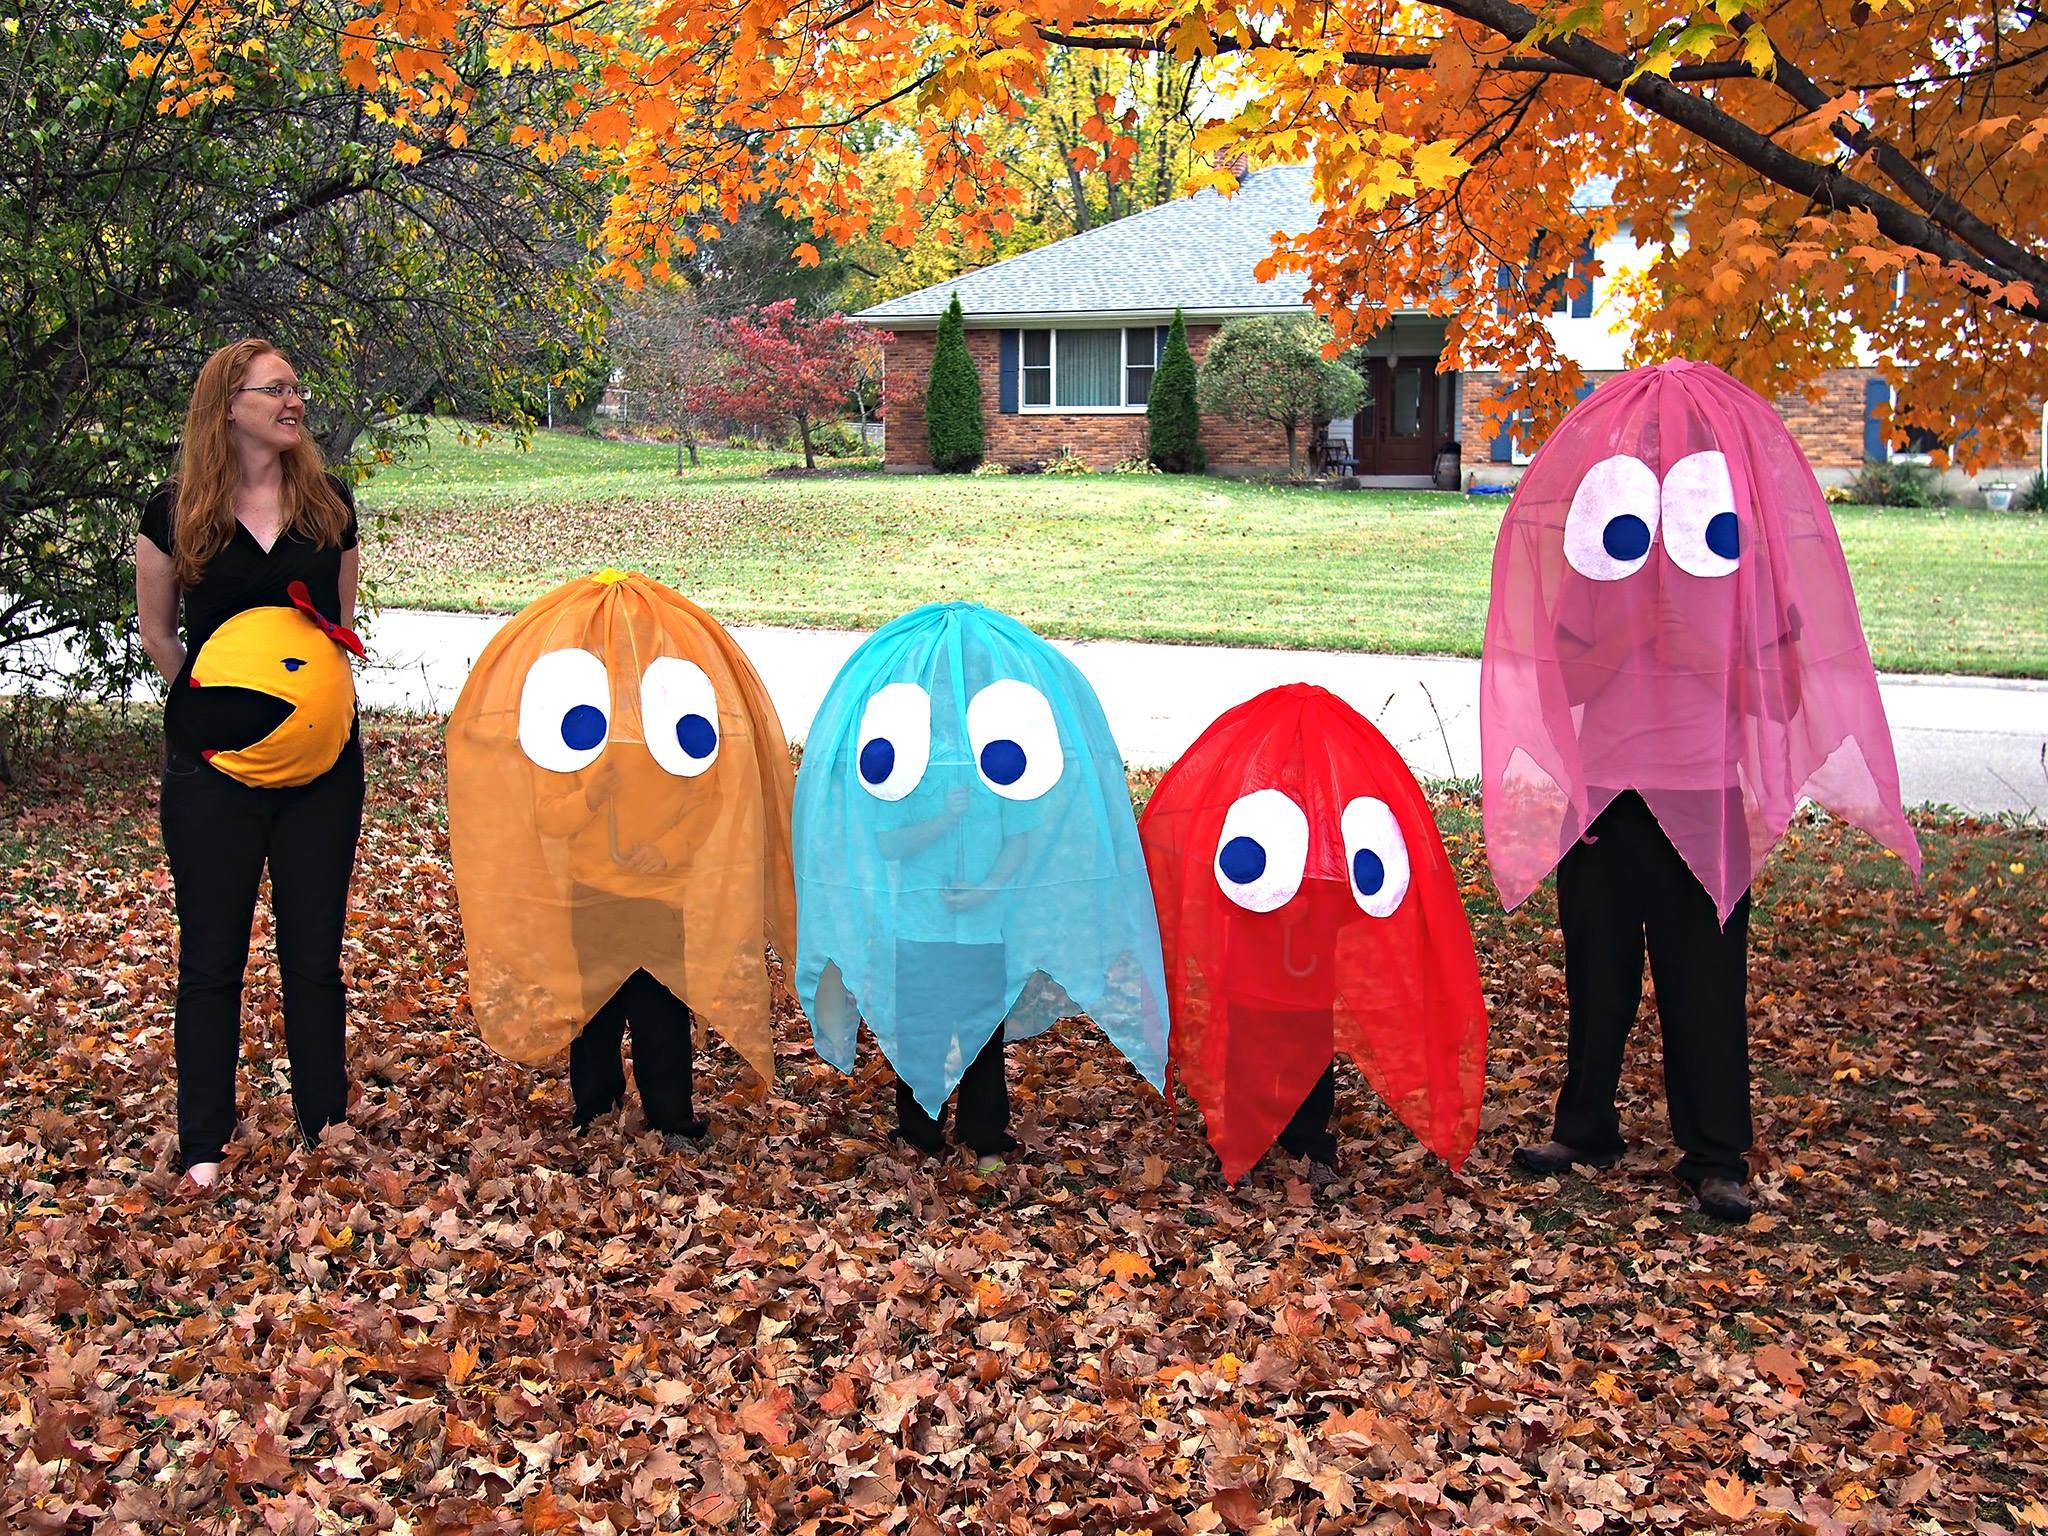 pacman family halloween costumes crafts pinterest kost m und fasching. Black Bedroom Furniture Sets. Home Design Ideas